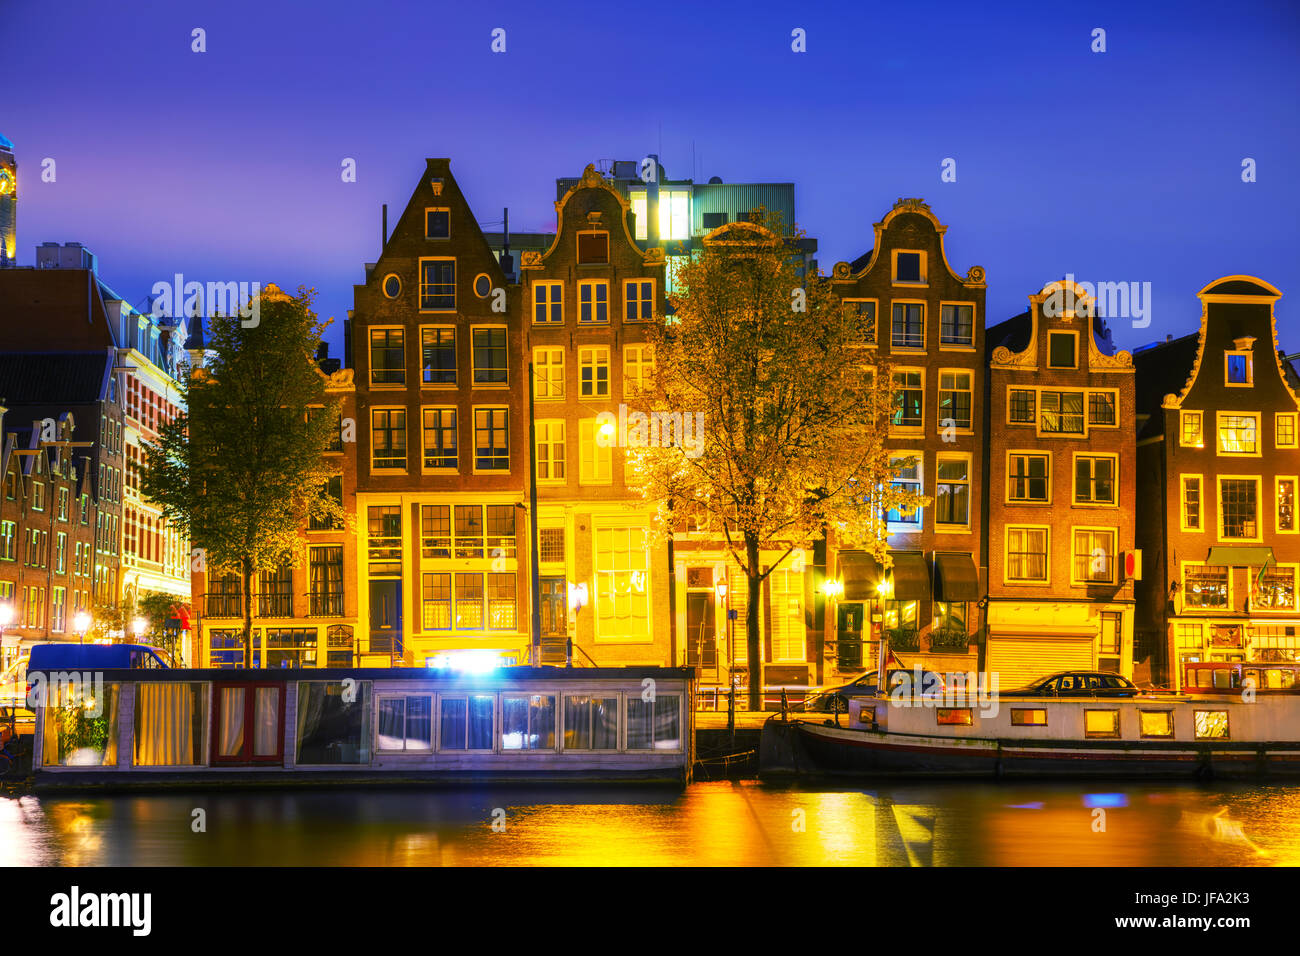 Amsterdam city view with Amstel river - Stock Image